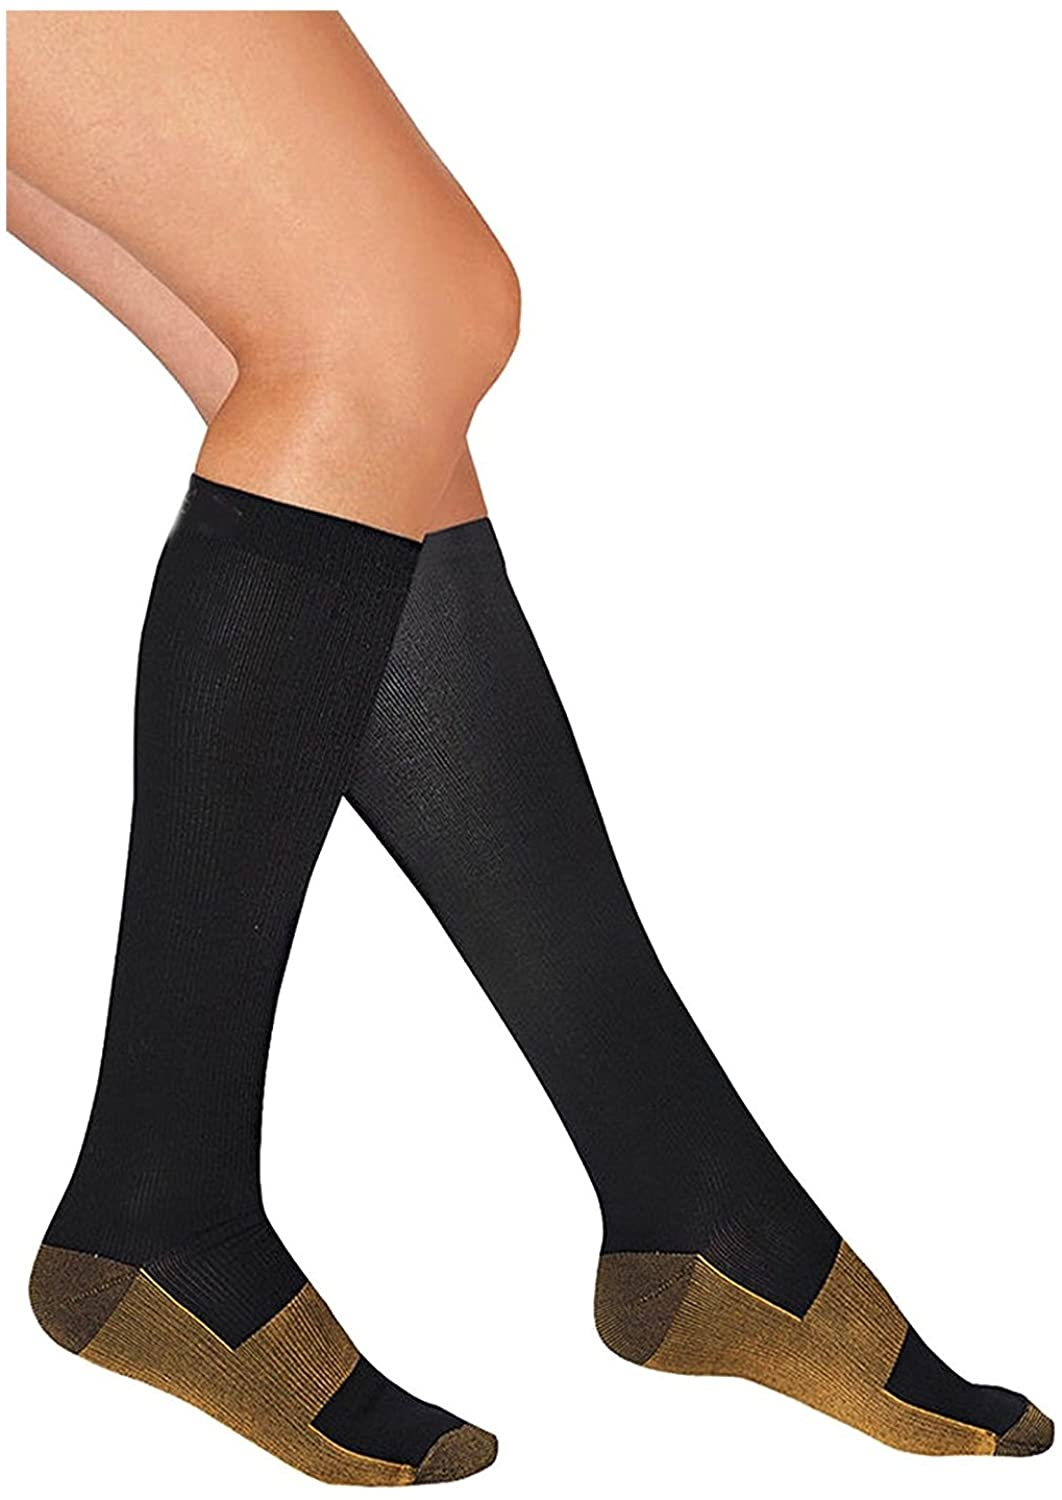 Copper Compression Socks Reduce Swelling Socks Antimicrobial Compression Socks - (S/M: Men 6.5-8.5 | Women 6.5-8.5)